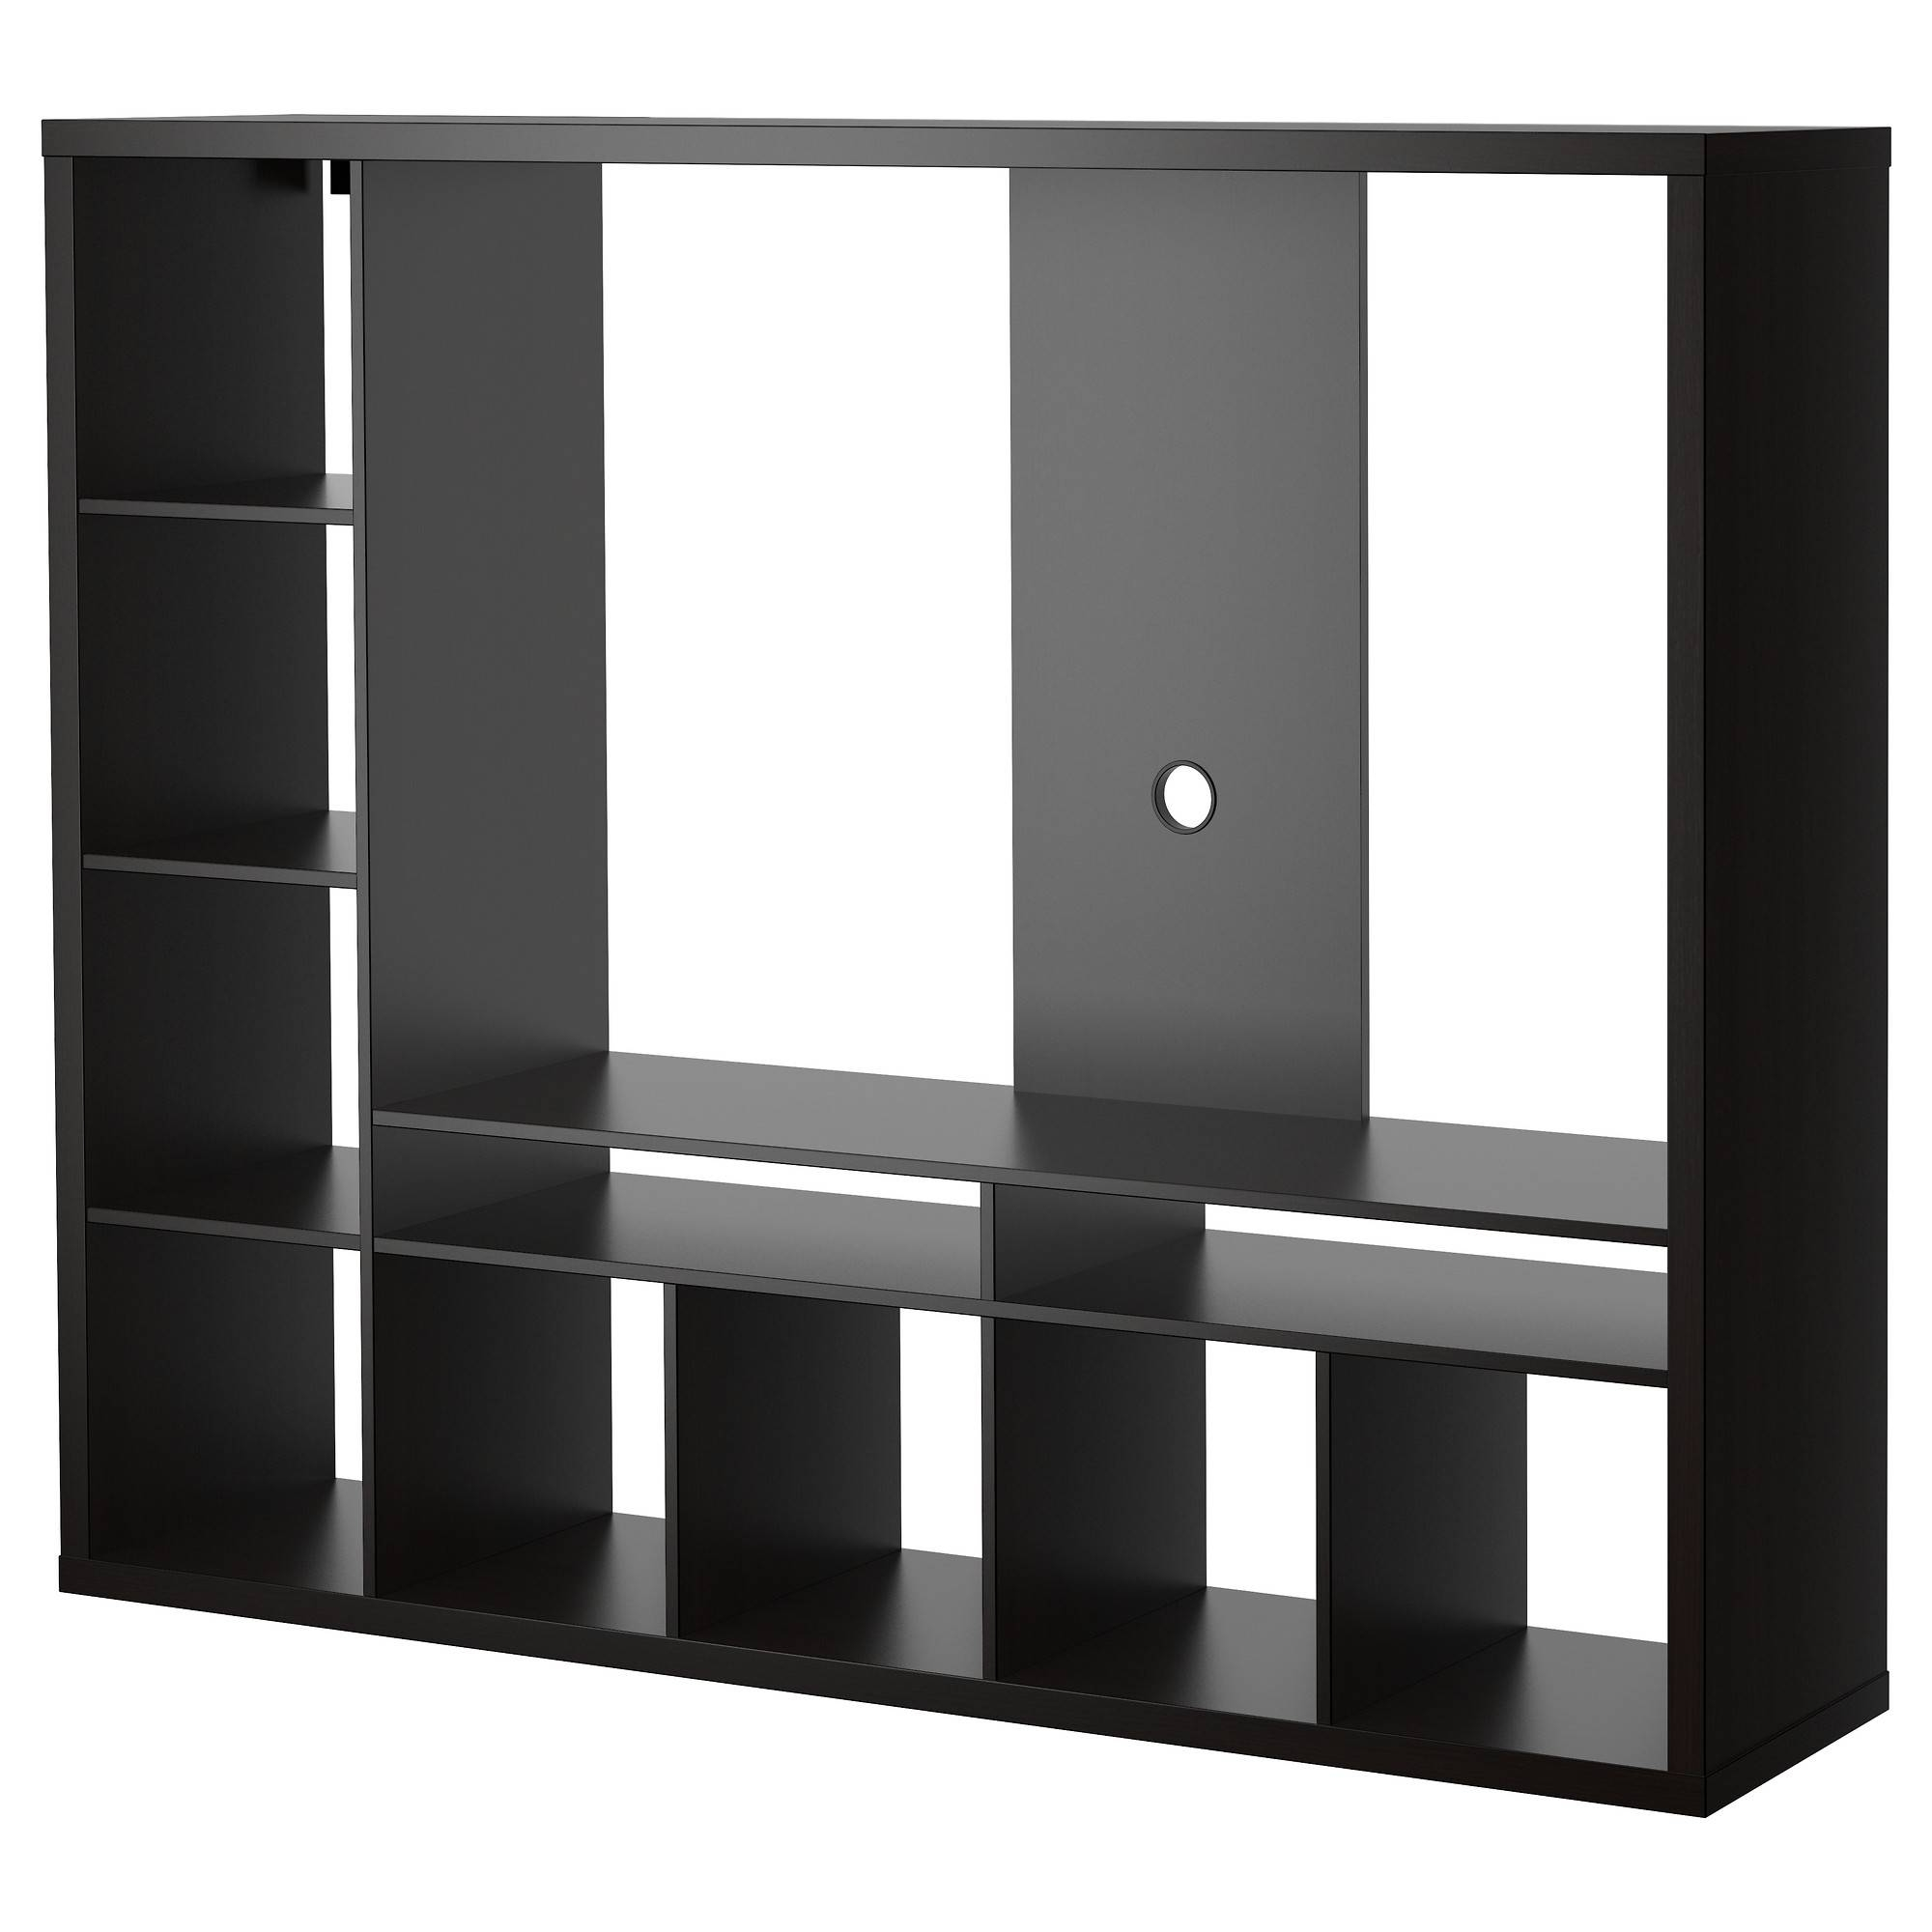 Lappland Tv Storage Unit – Black Brown – Ikea Inside Tv Stands And Bookshelf (View 14 of 15)